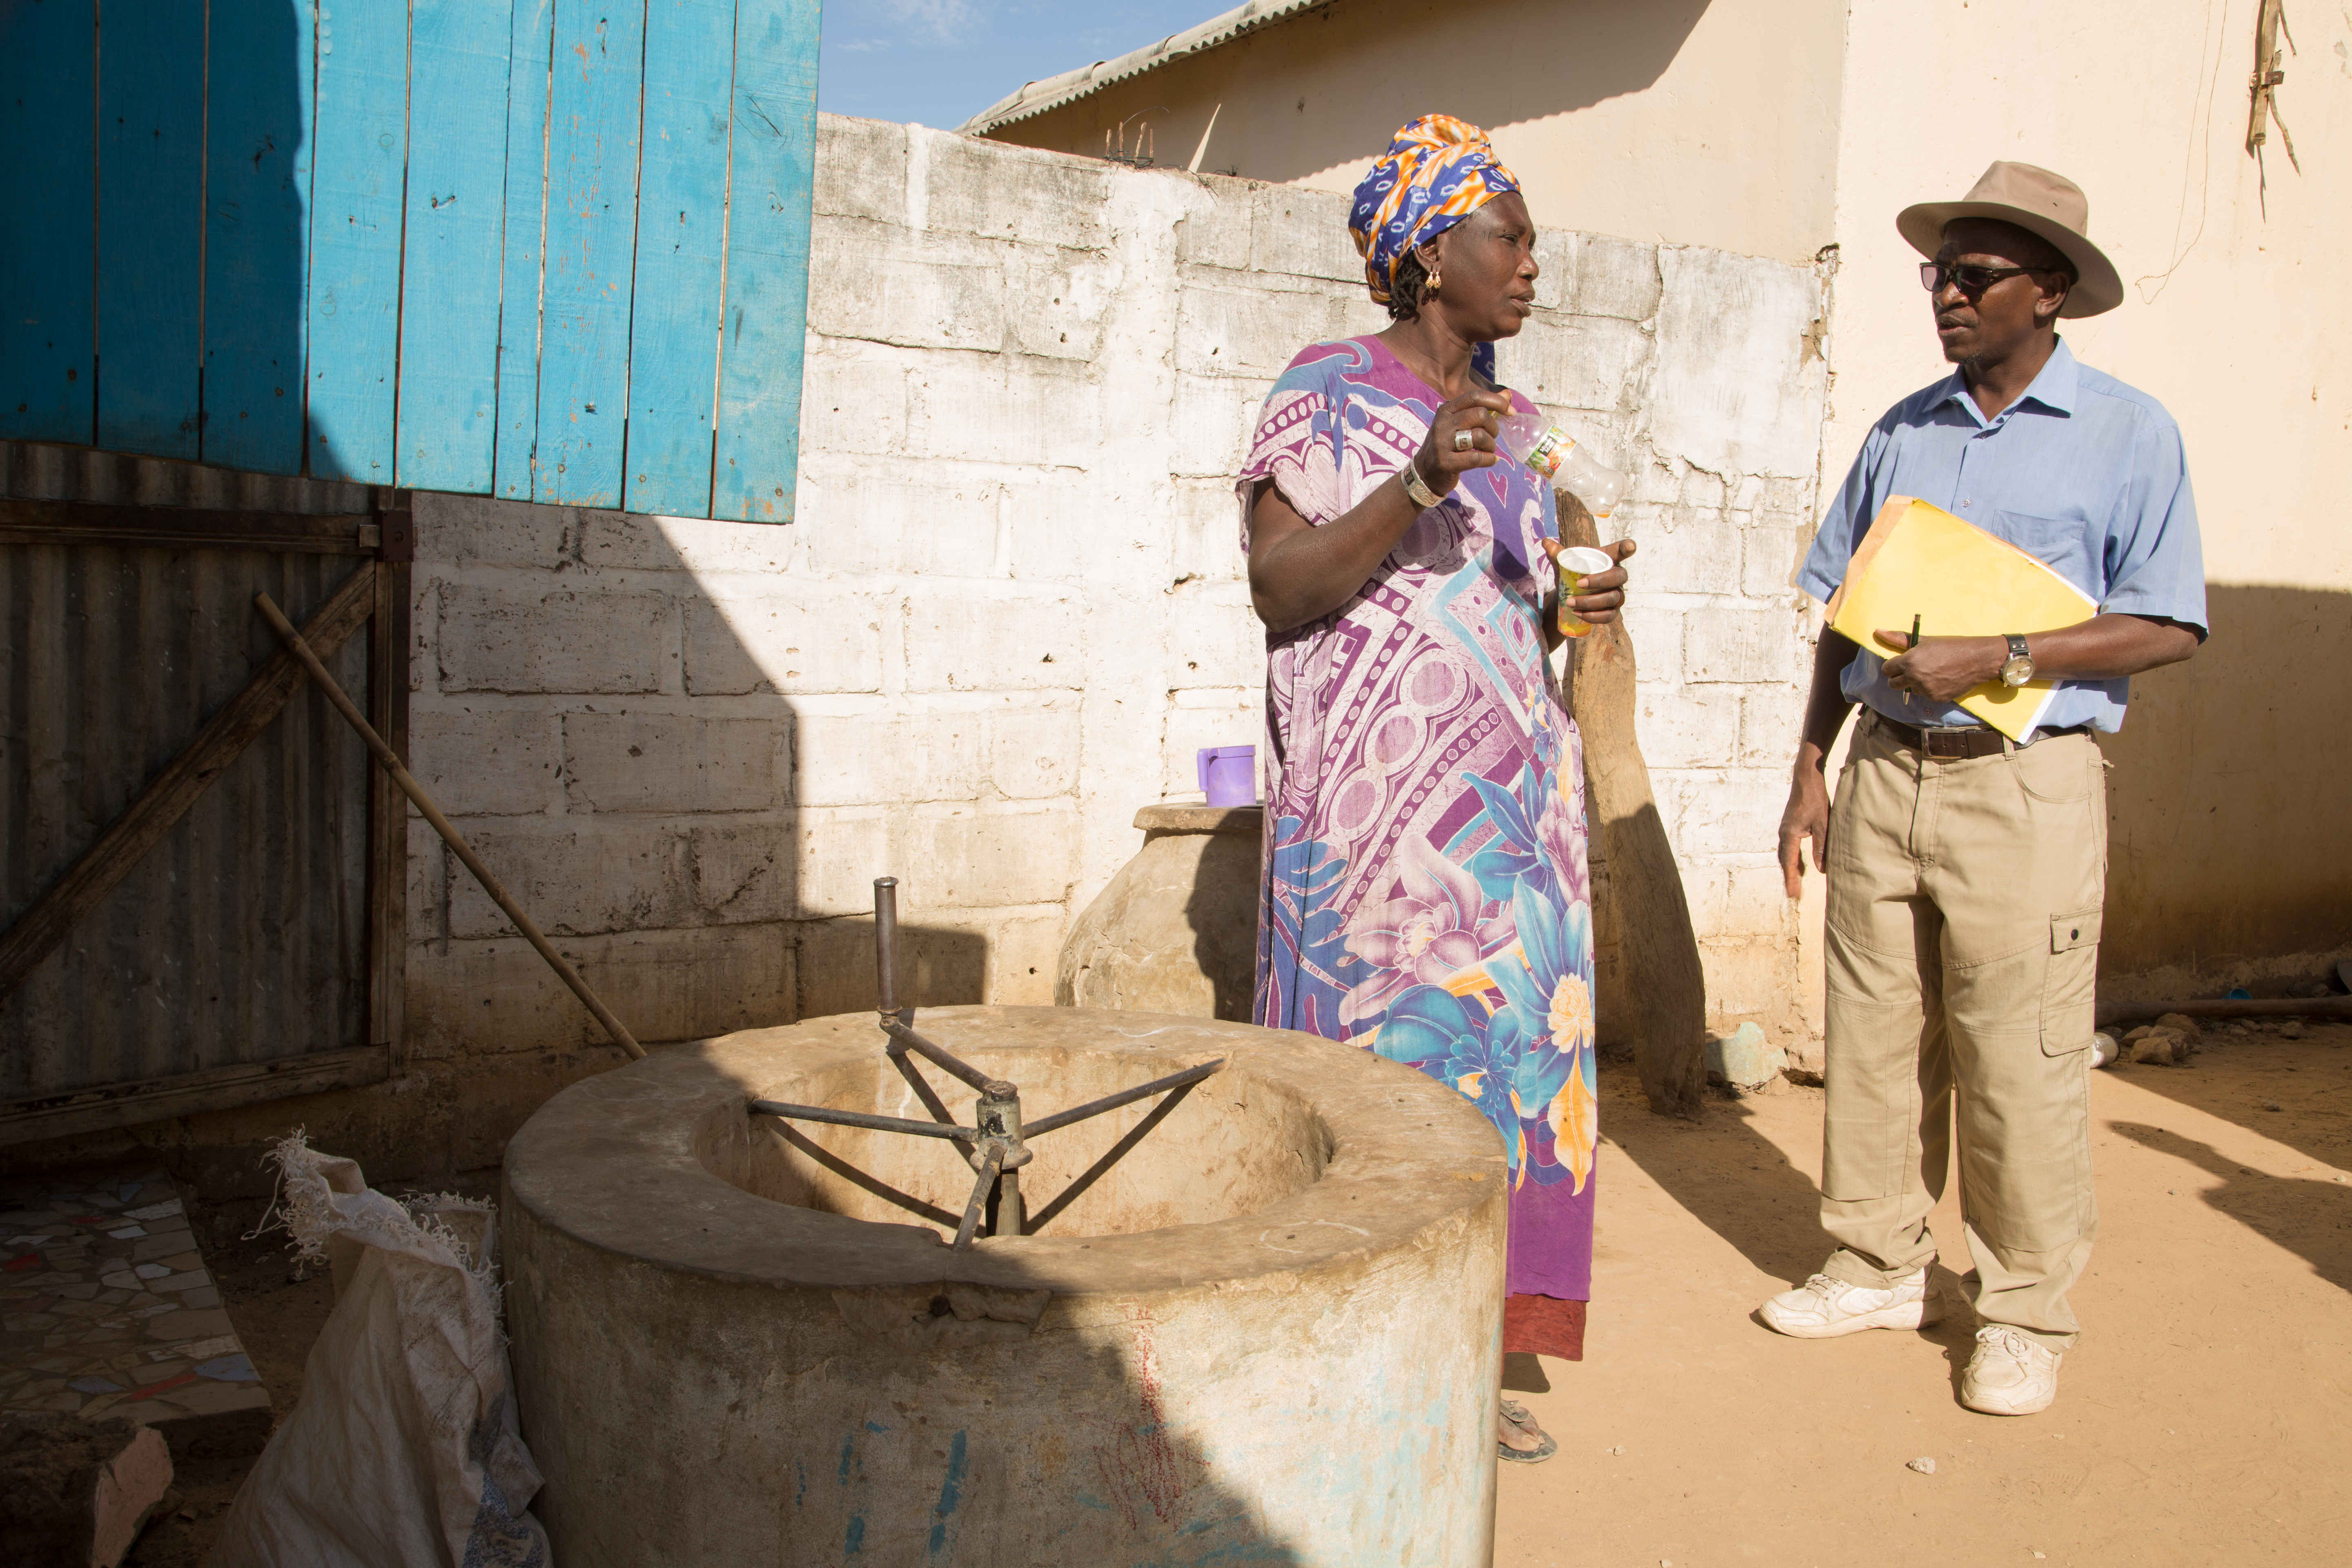 The woman in the colorful dress and headwrap talks to a man wearing sunglasses; a light blue, short-sleeved button-up; khaki pants; and a matching hat. They're standing near the biodigester in front of a short, white brick wall.